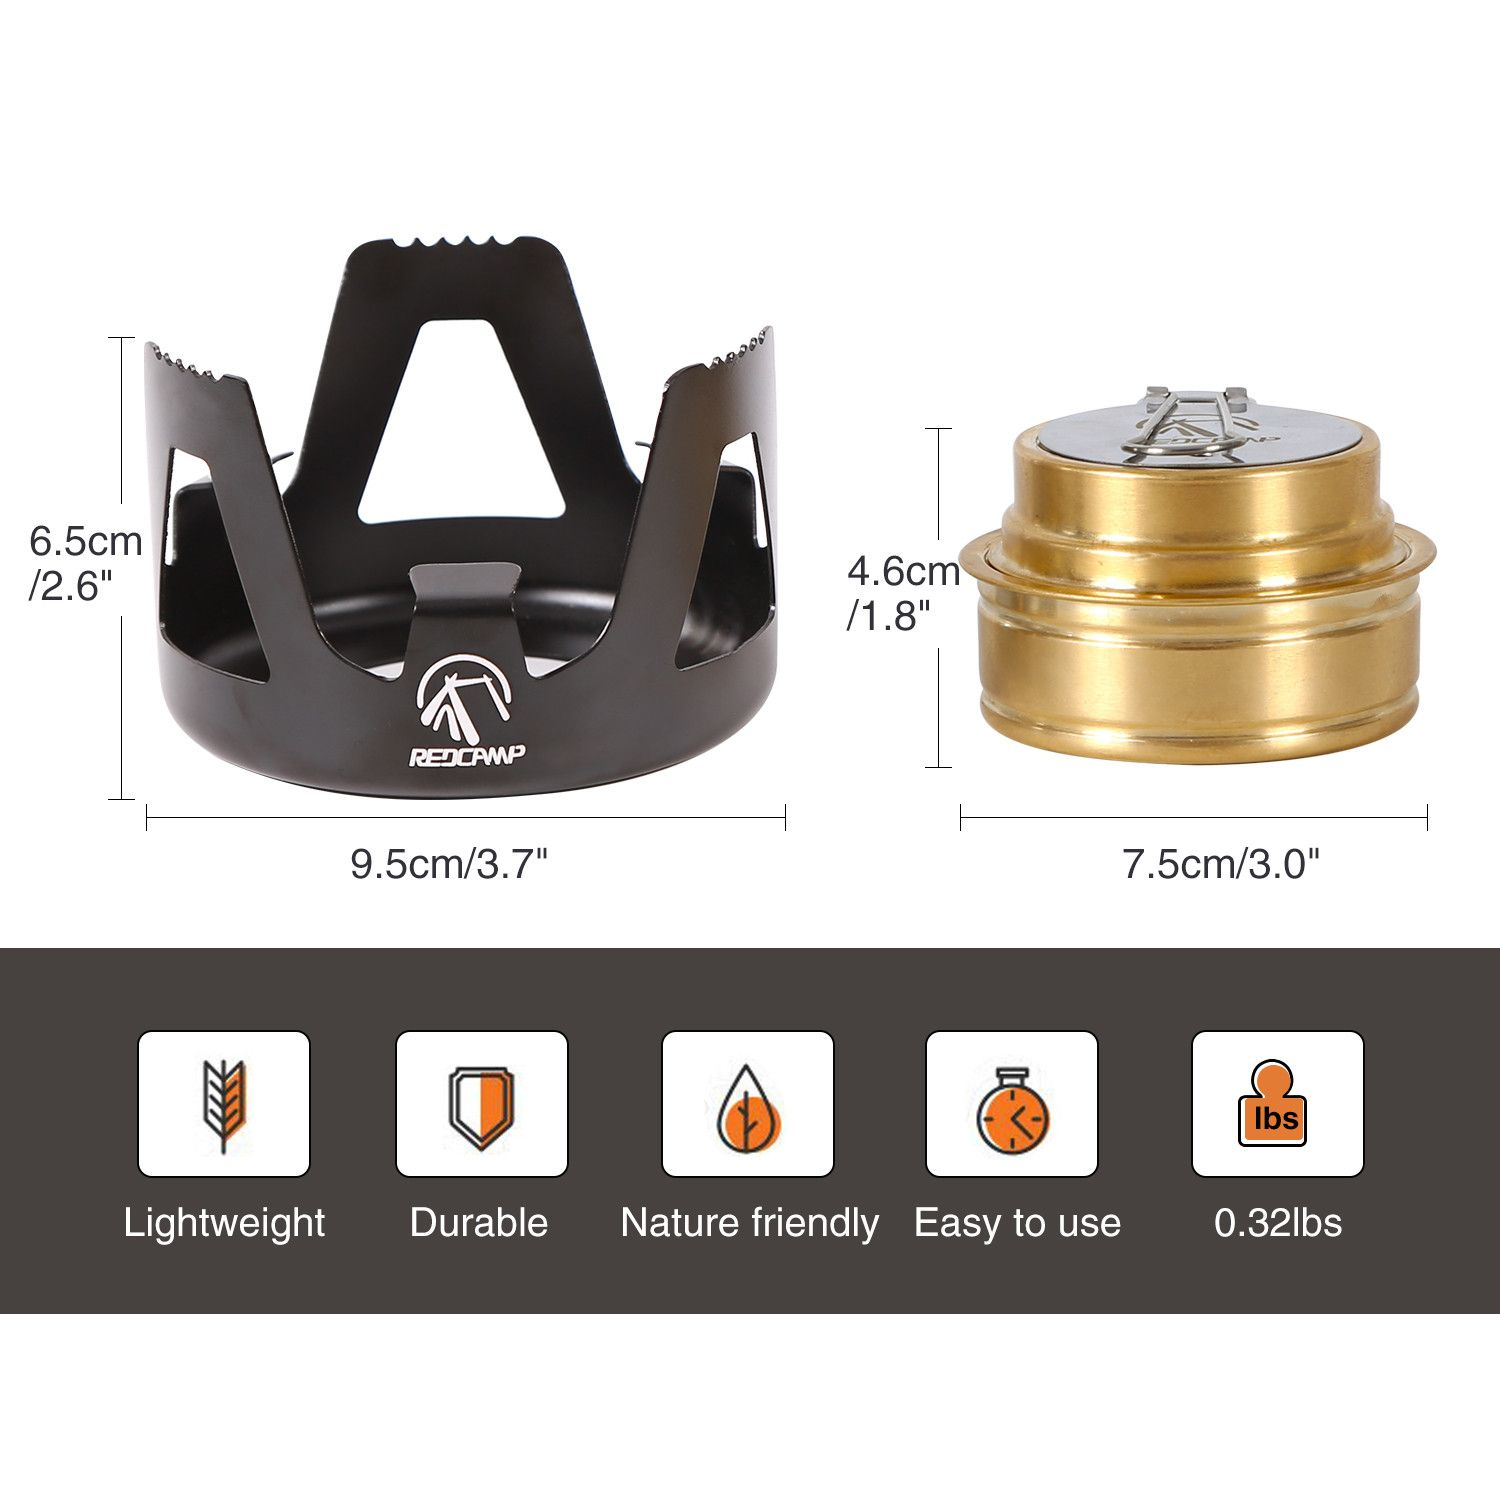 Ultralight Portable Alcohol Stove for Backpacking Hiking Outdoor Small Lightweight Camping Stove for BBQ Cooking Picnic REDCAMP Mini Spirit Burner